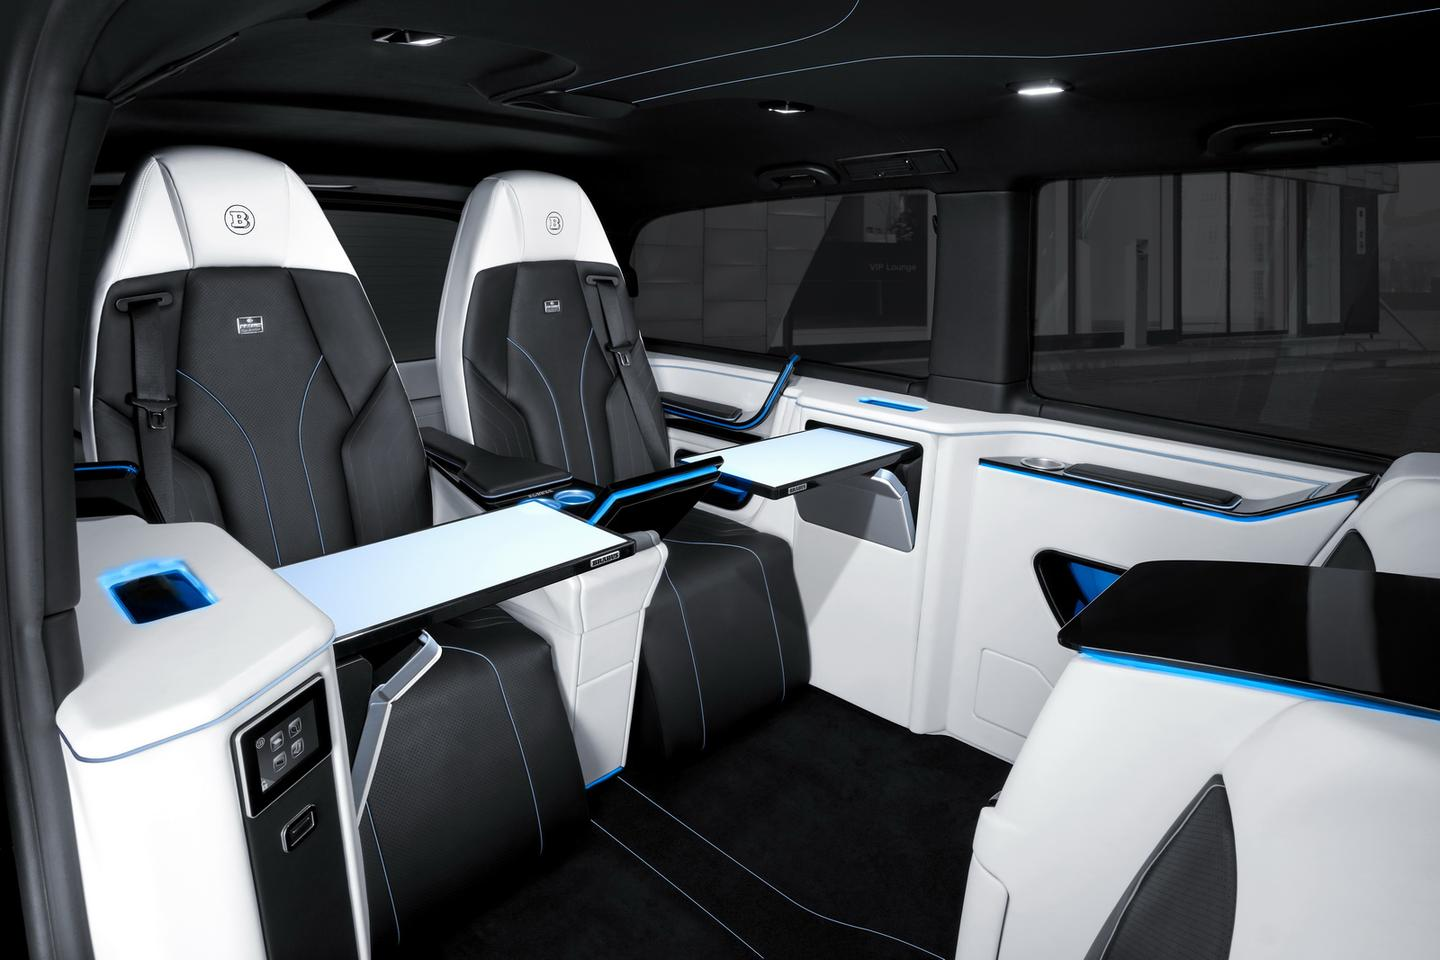 The new Brabus Business Lounge includes comfortable VIP seating, inductive phone charging and folding tables